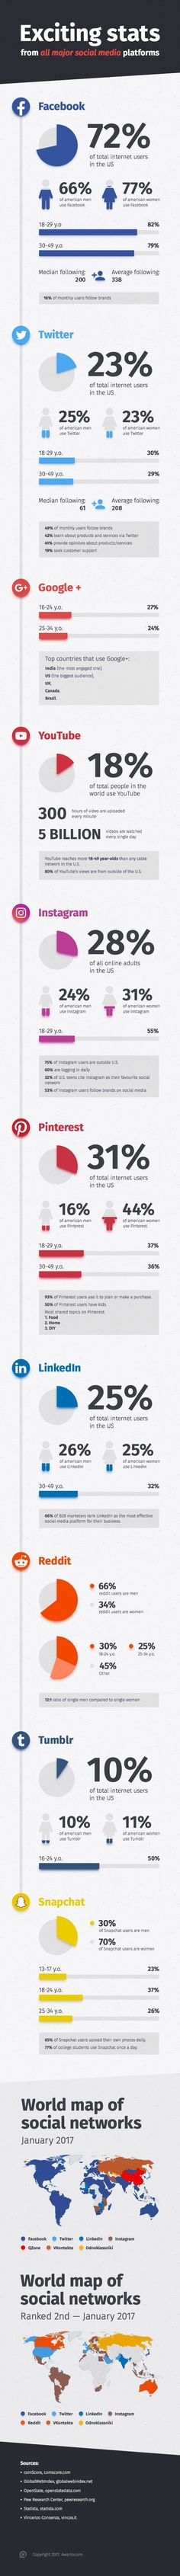 50 Must-Know Stats for Social Media Marketing Success [Infographic]